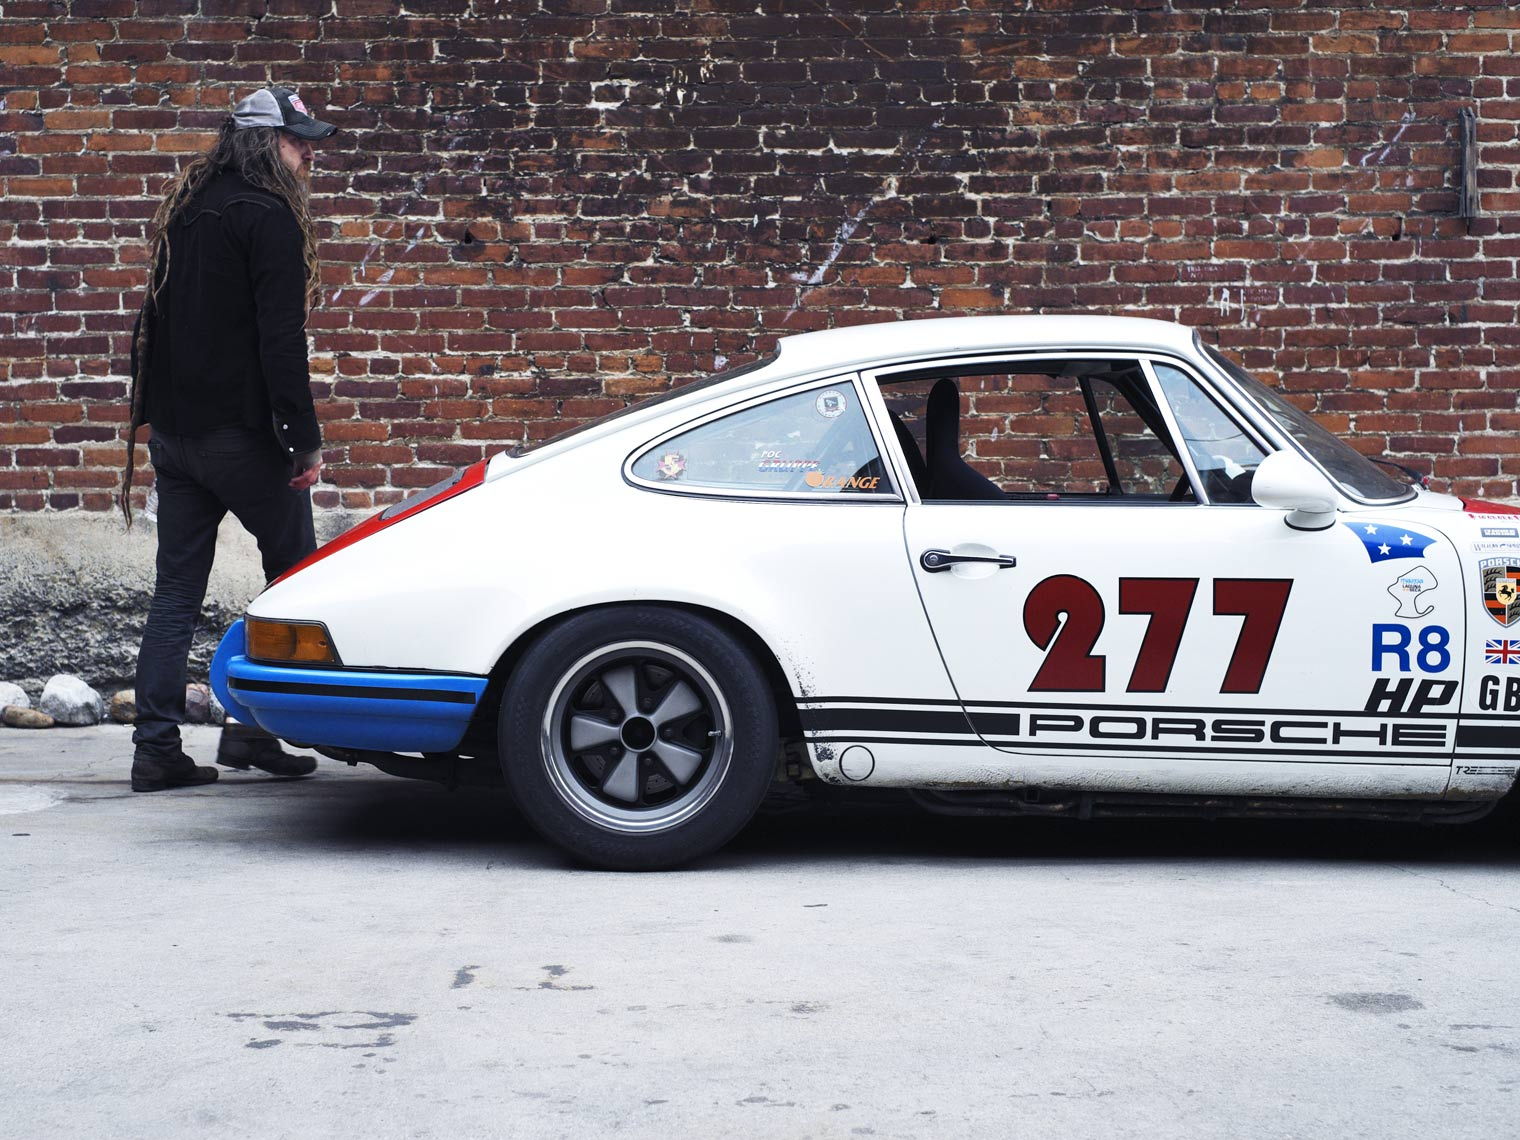 20121128_intersection_magnuswalker_106.jpg